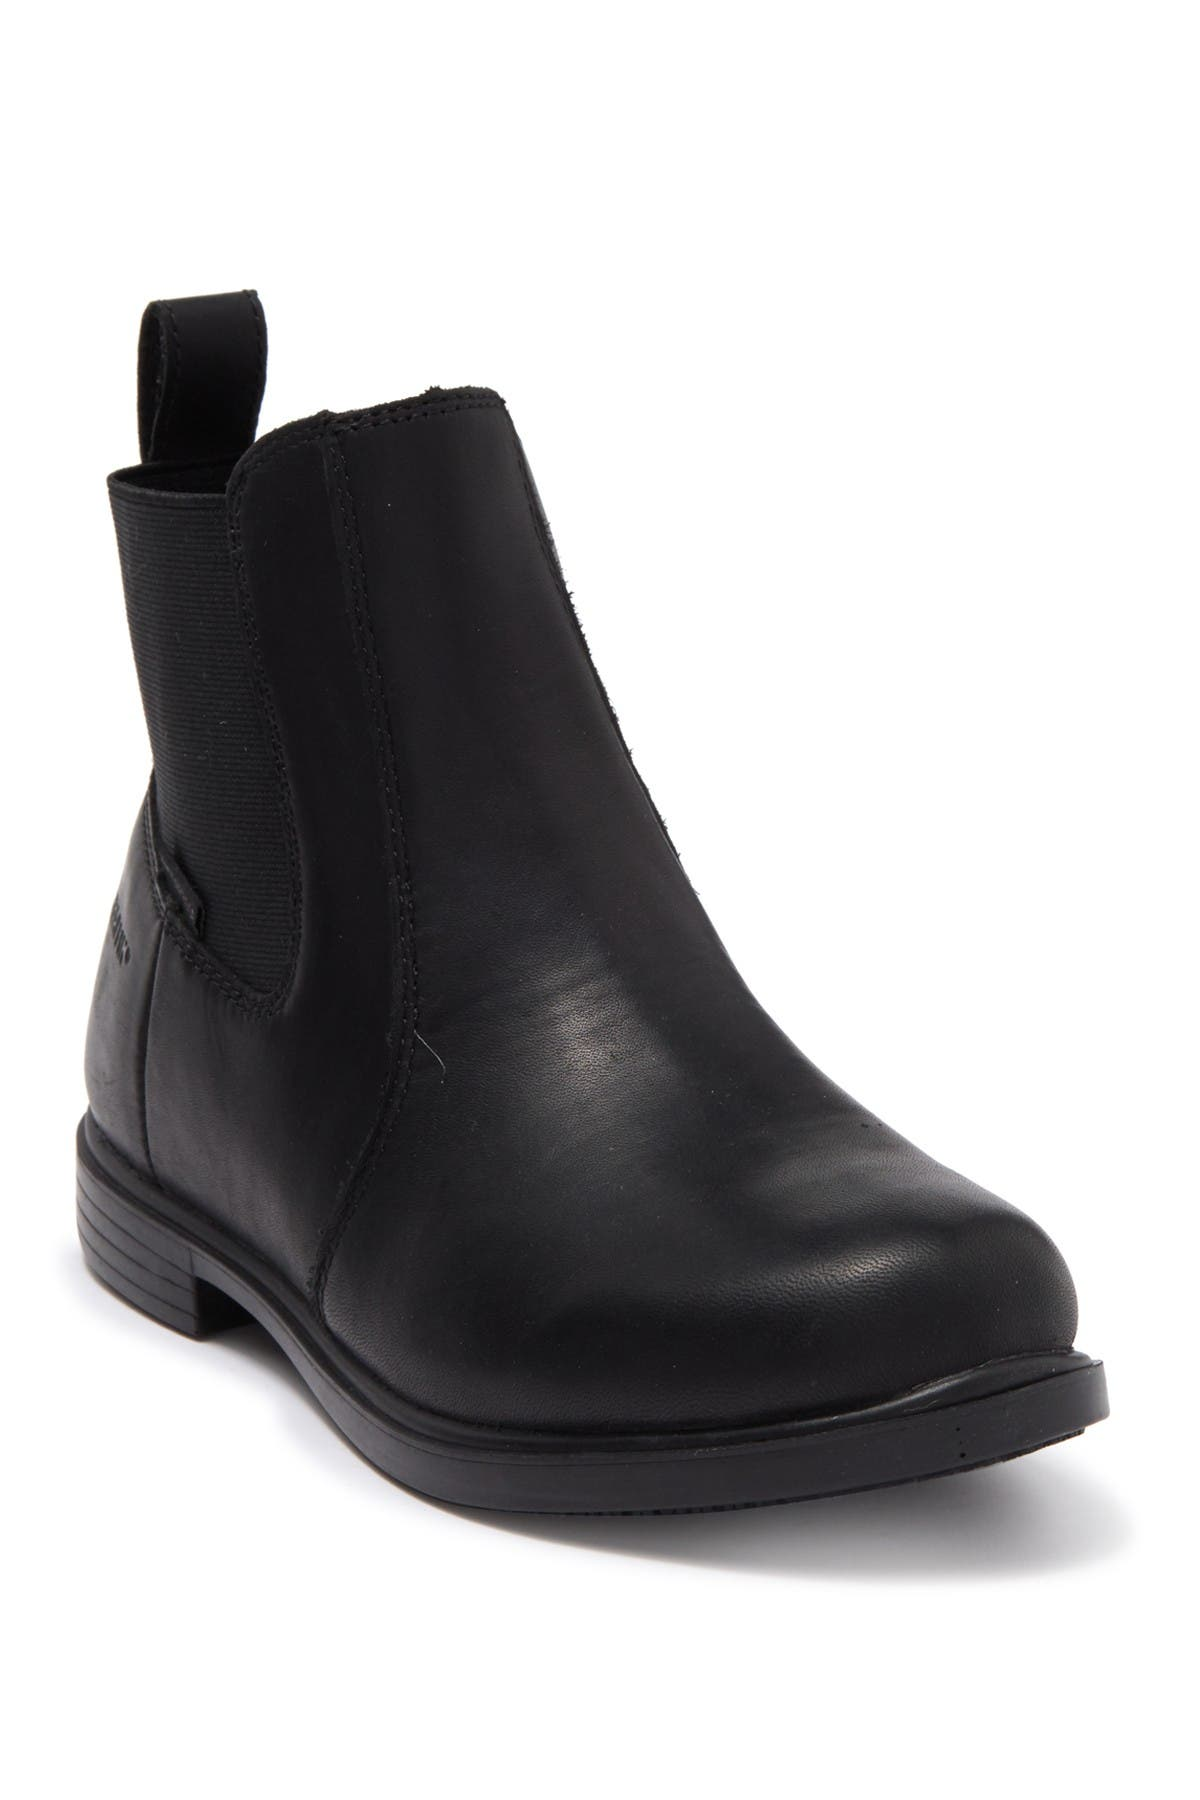 Image of BAFFIN Chelsea Boot